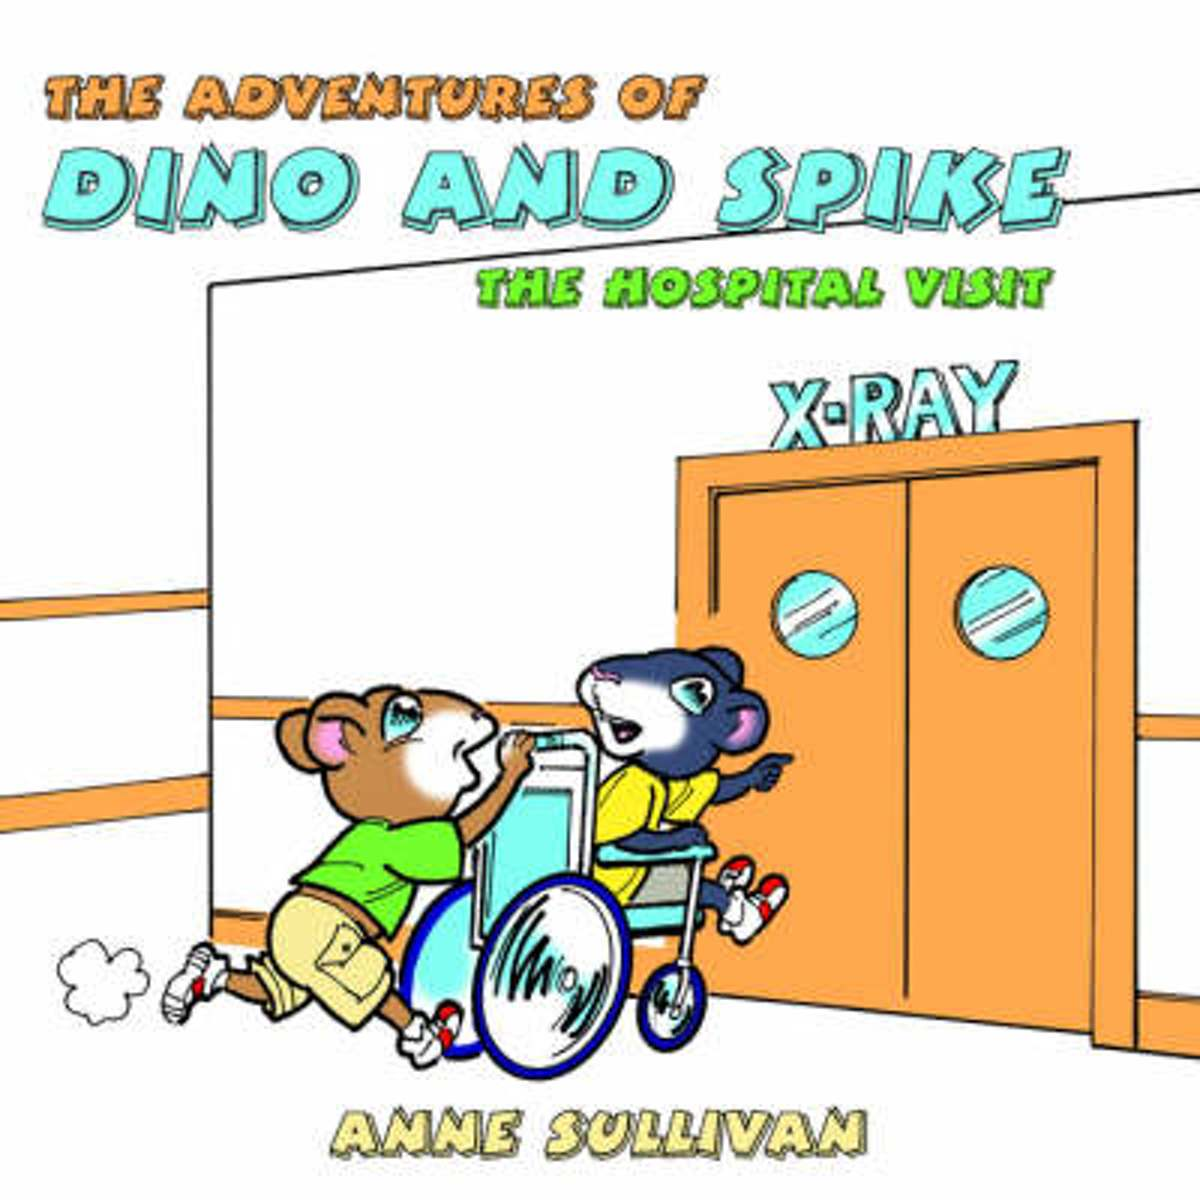 The Adventures of Dino and Spike